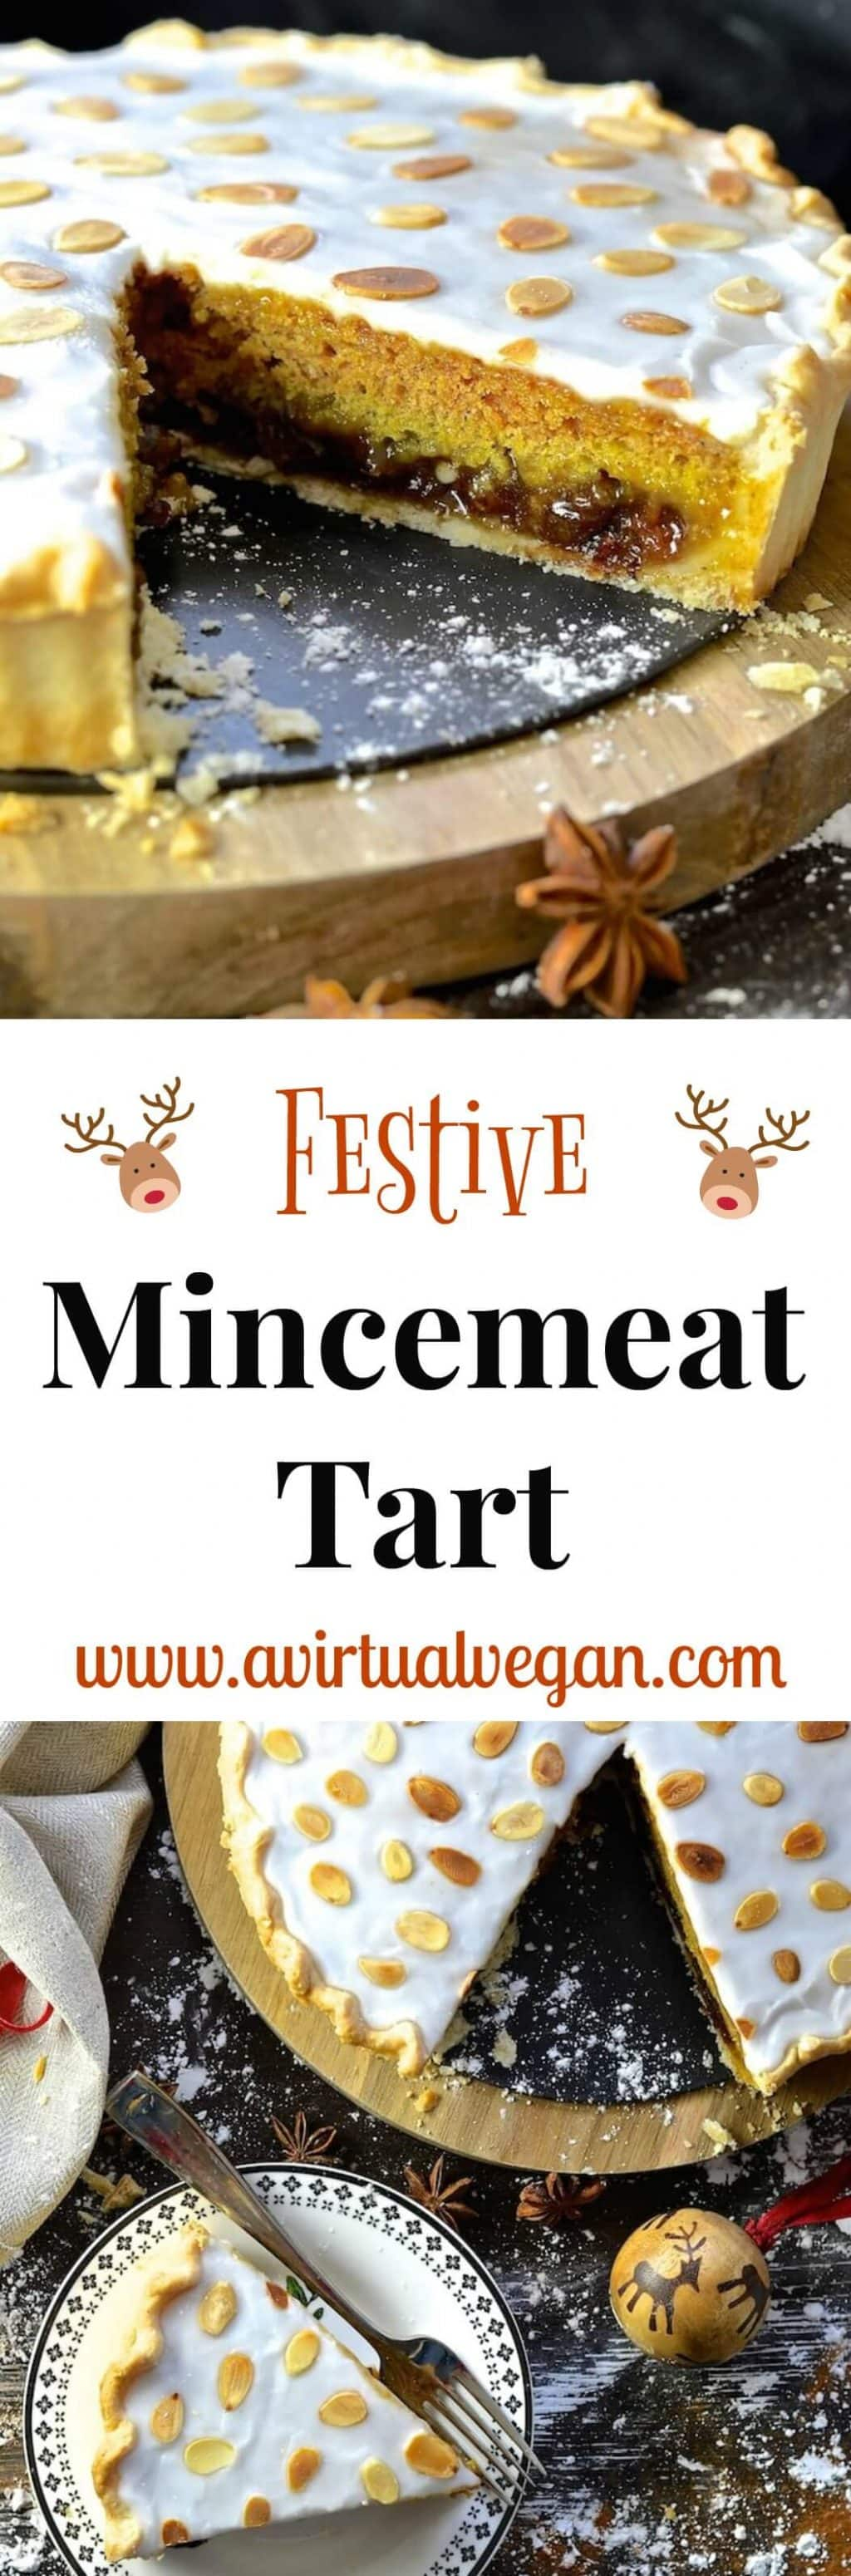 A Festive Mincemeat Tart with crisp pastry, sweet mincemeat, spice infused sponge & sweet frosting. It's rich, indulgent & perfect for the holidays!